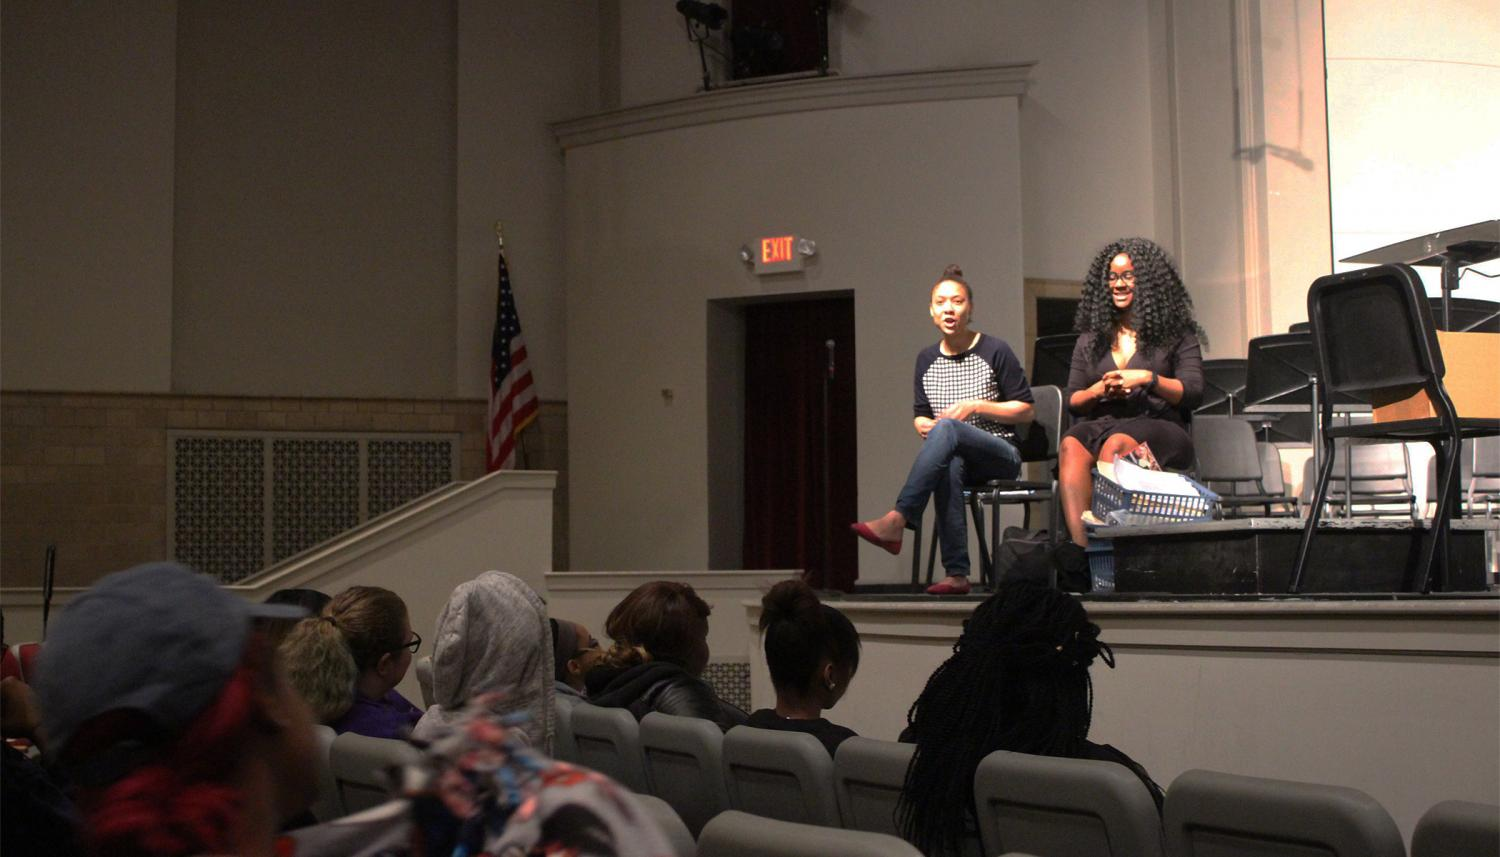 Representatives From College Mentor Workshop Come To City